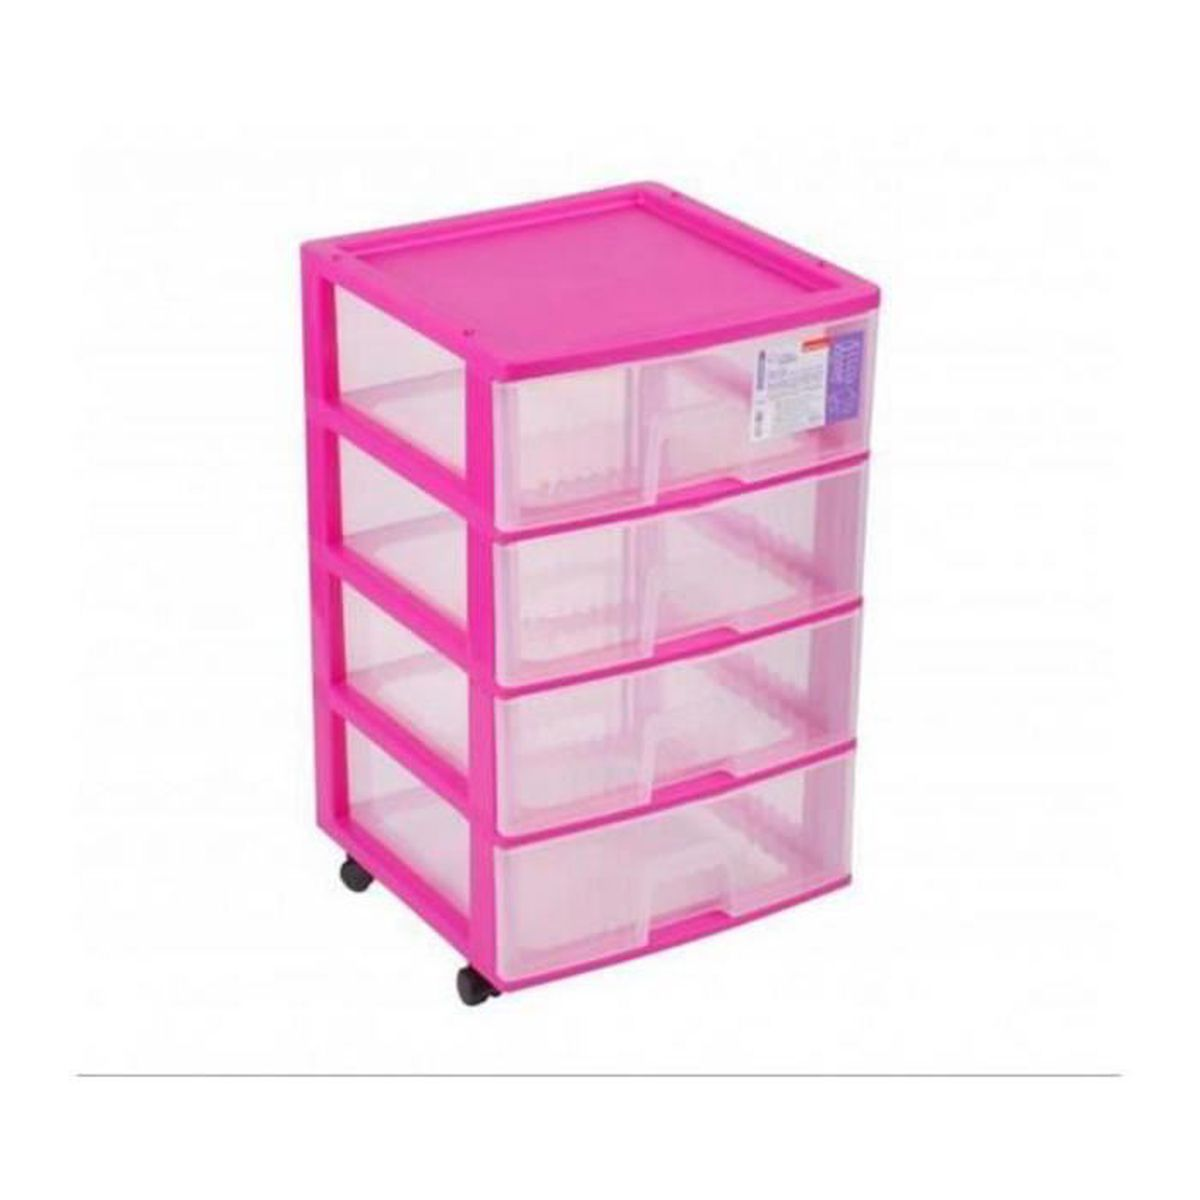 tour de rangement 4 tiroirs plastique fushia roulettes x x cm achat. Black Bedroom Furniture Sets. Home Design Ideas